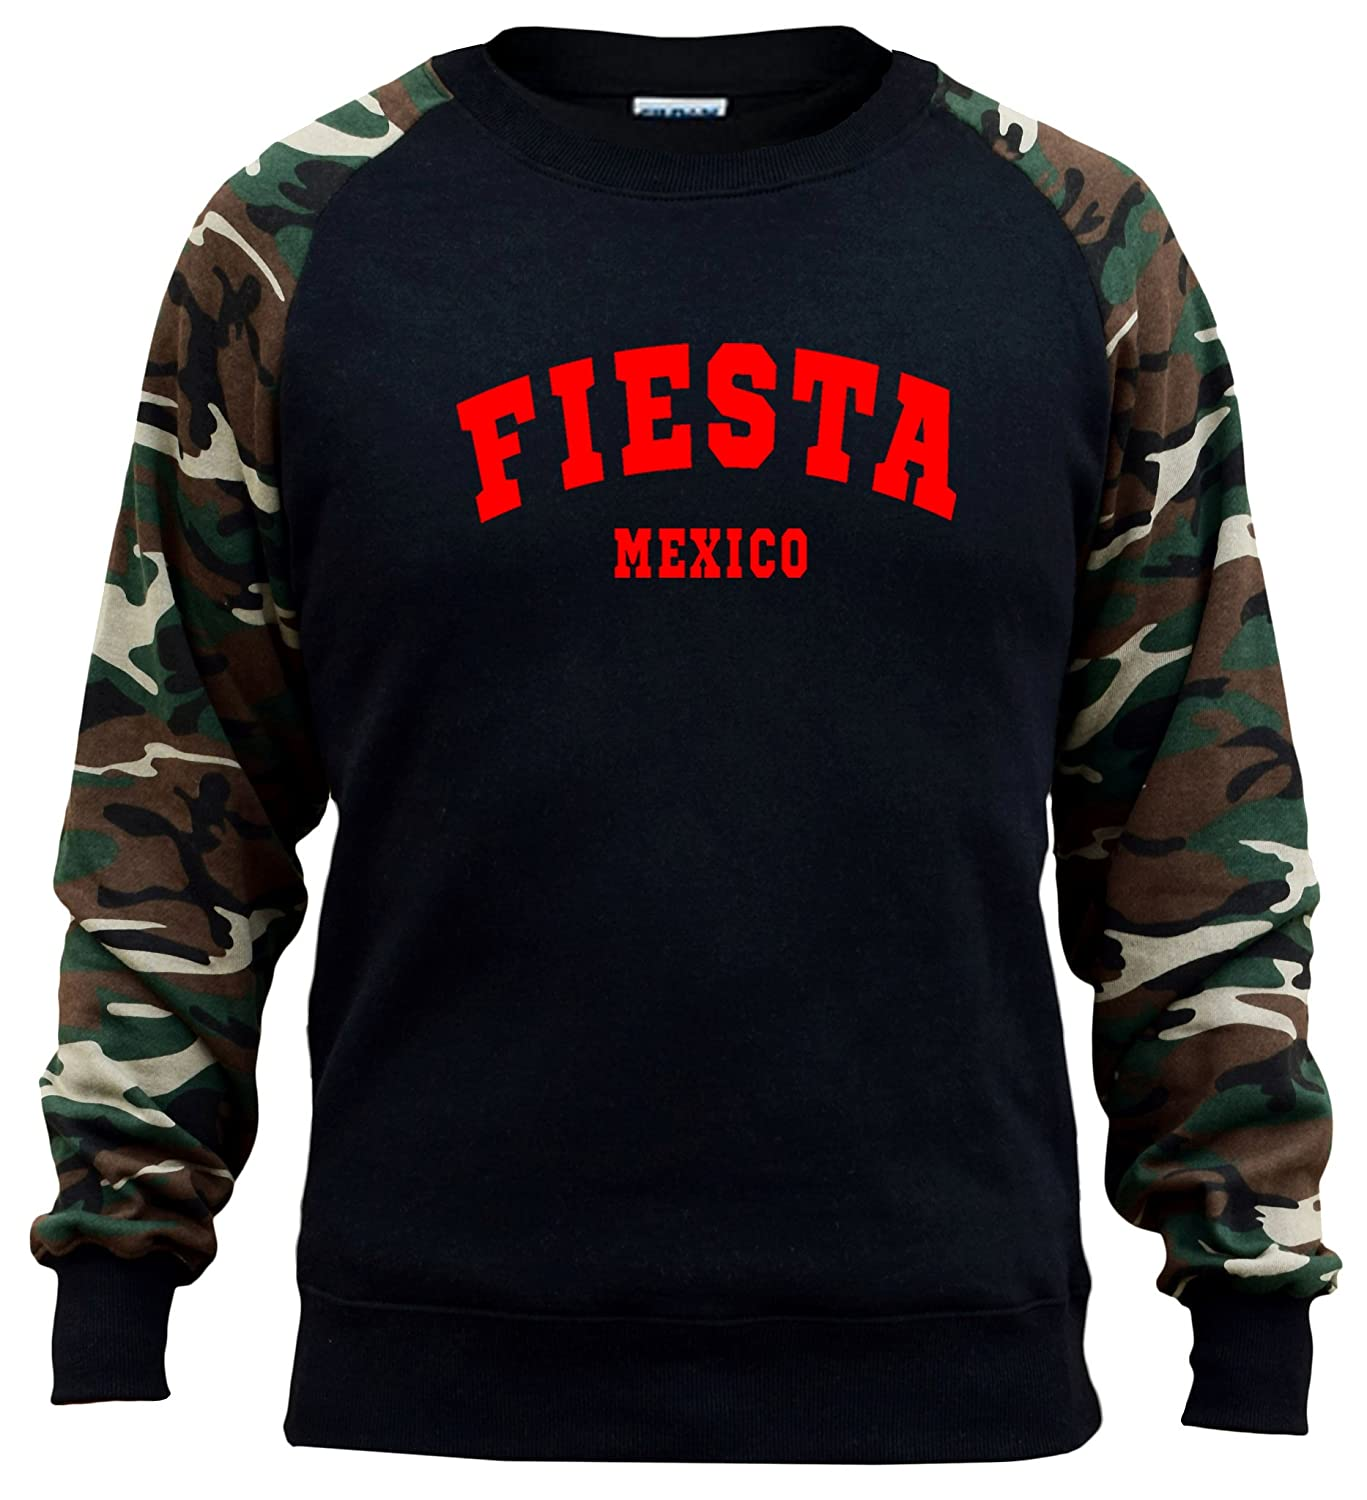 Interstate Apparel Mens Fiesta Mexico V528 Black//Camo Raglan Baseball Sweatshirt Black